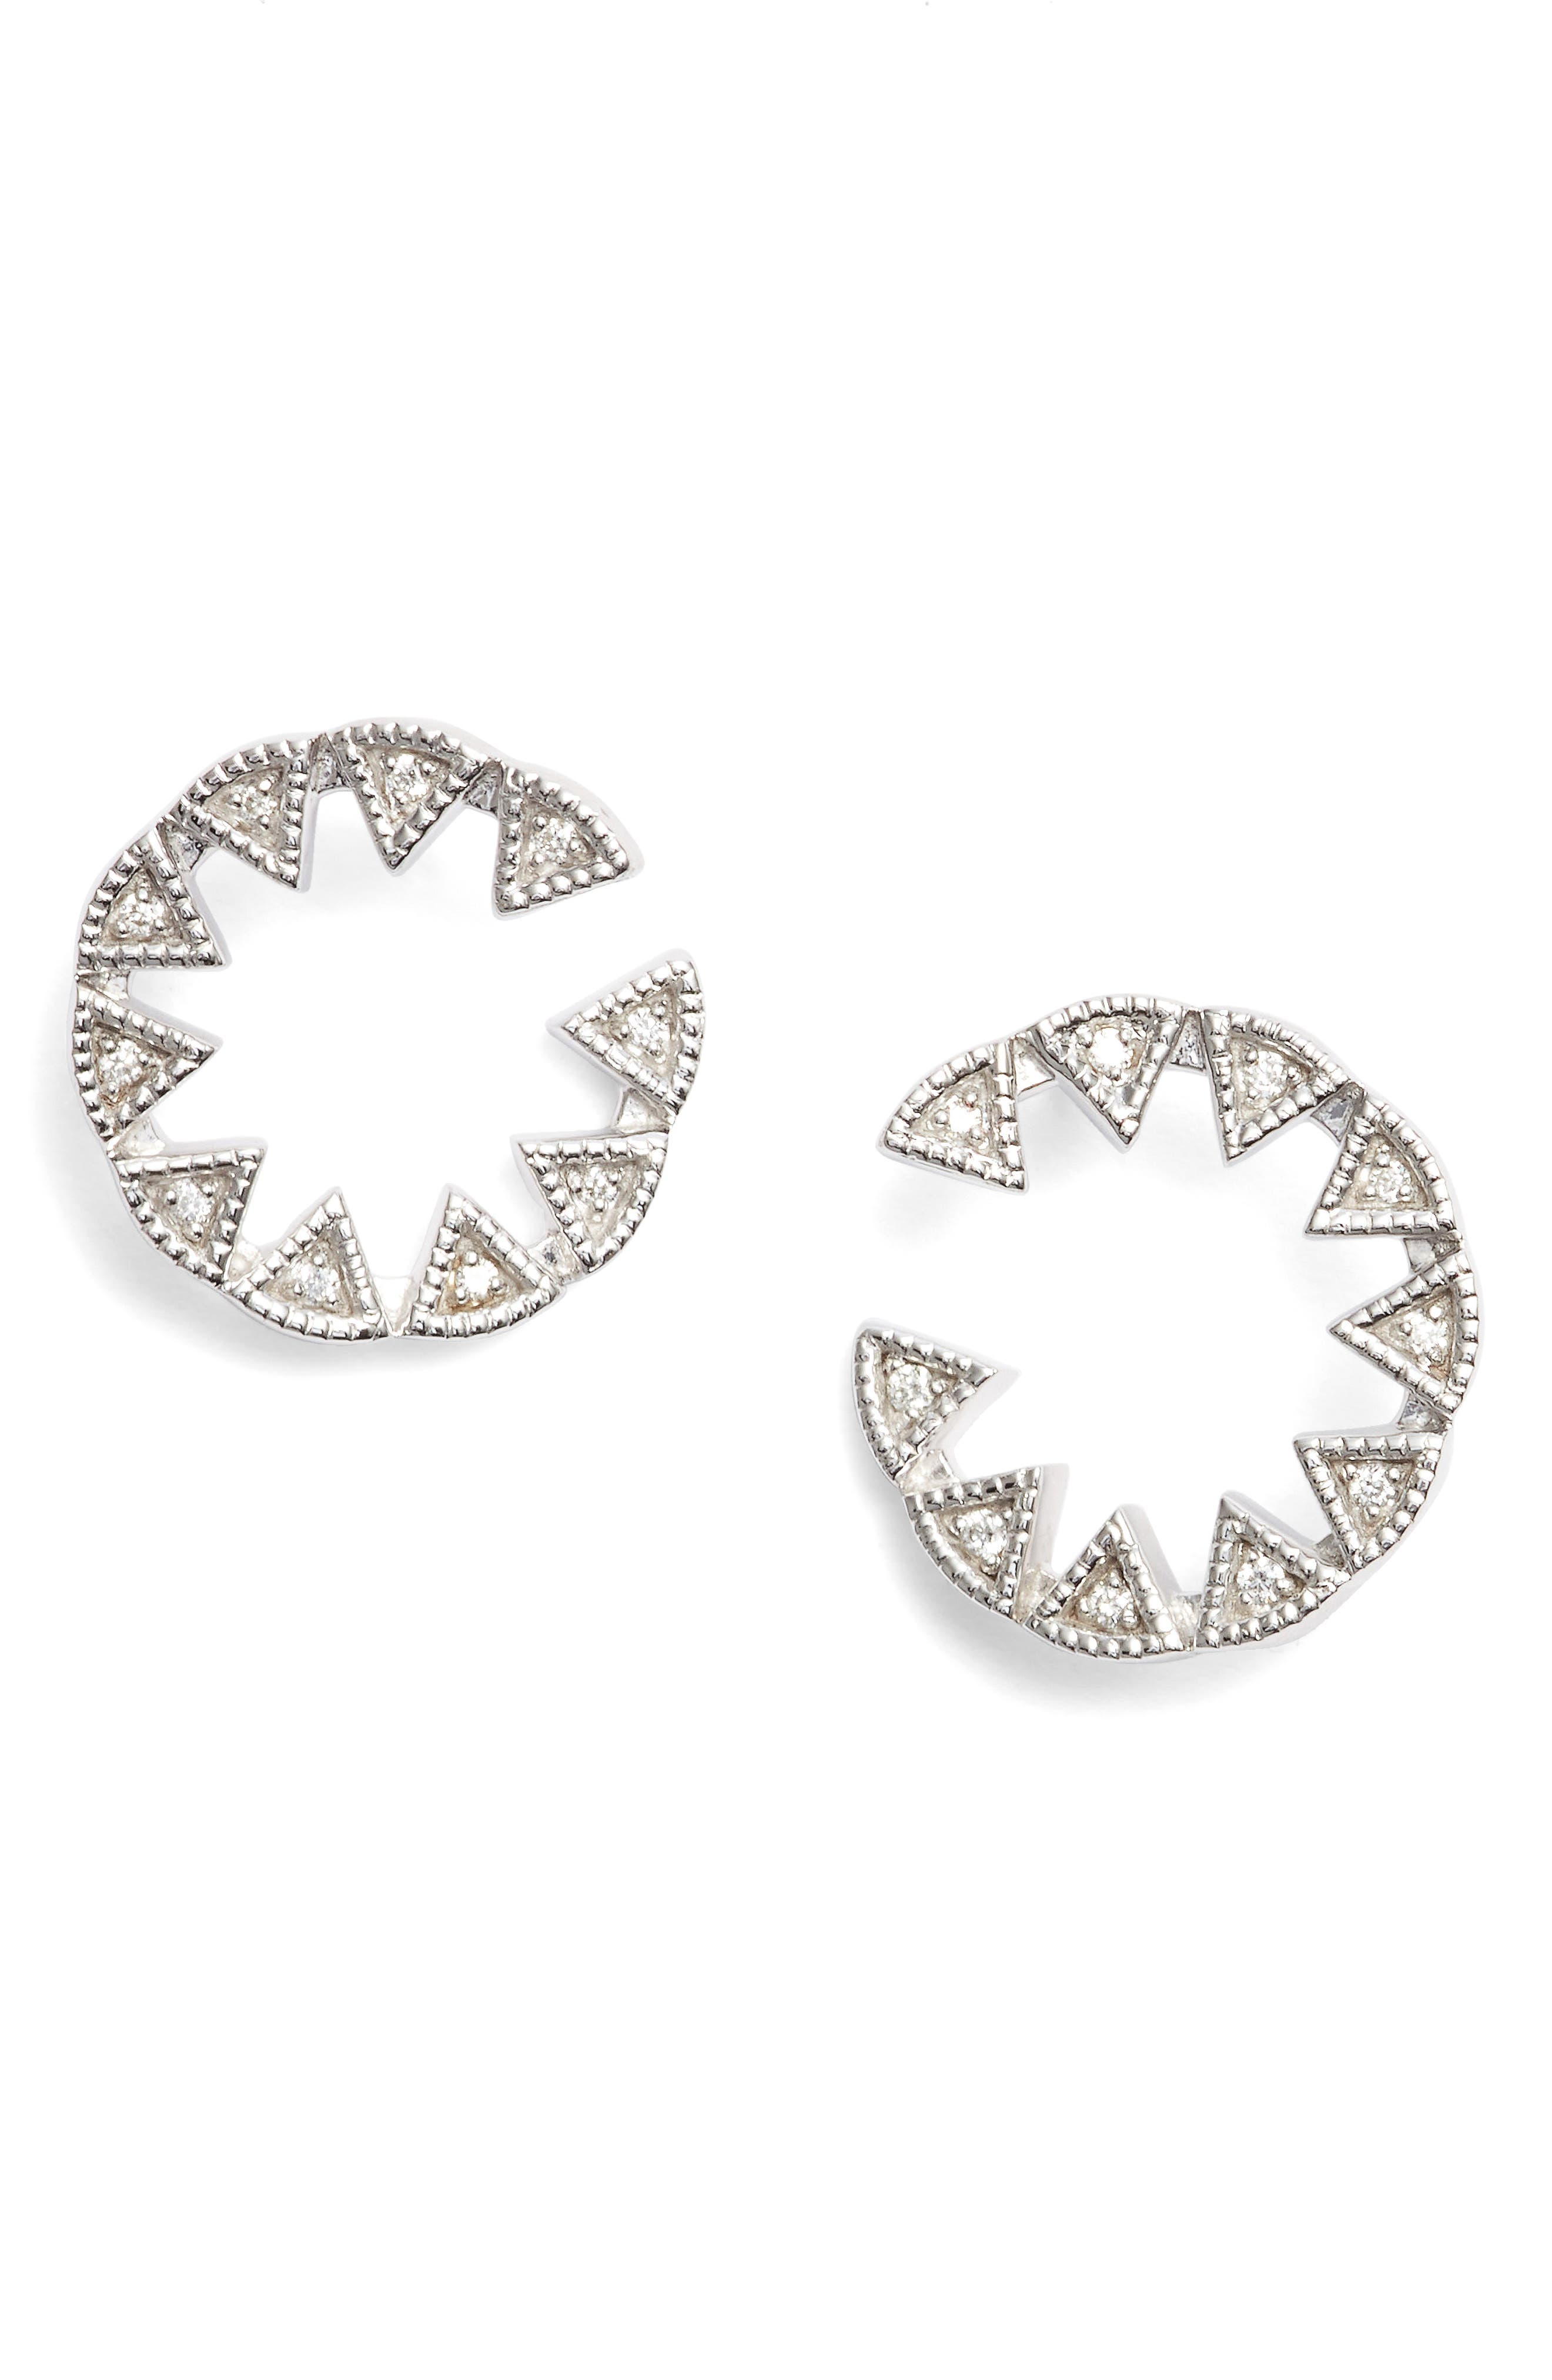 Emily Sarah Triangle Diamond Stud Earrings,                         Main,                         color, WHITE GOLD